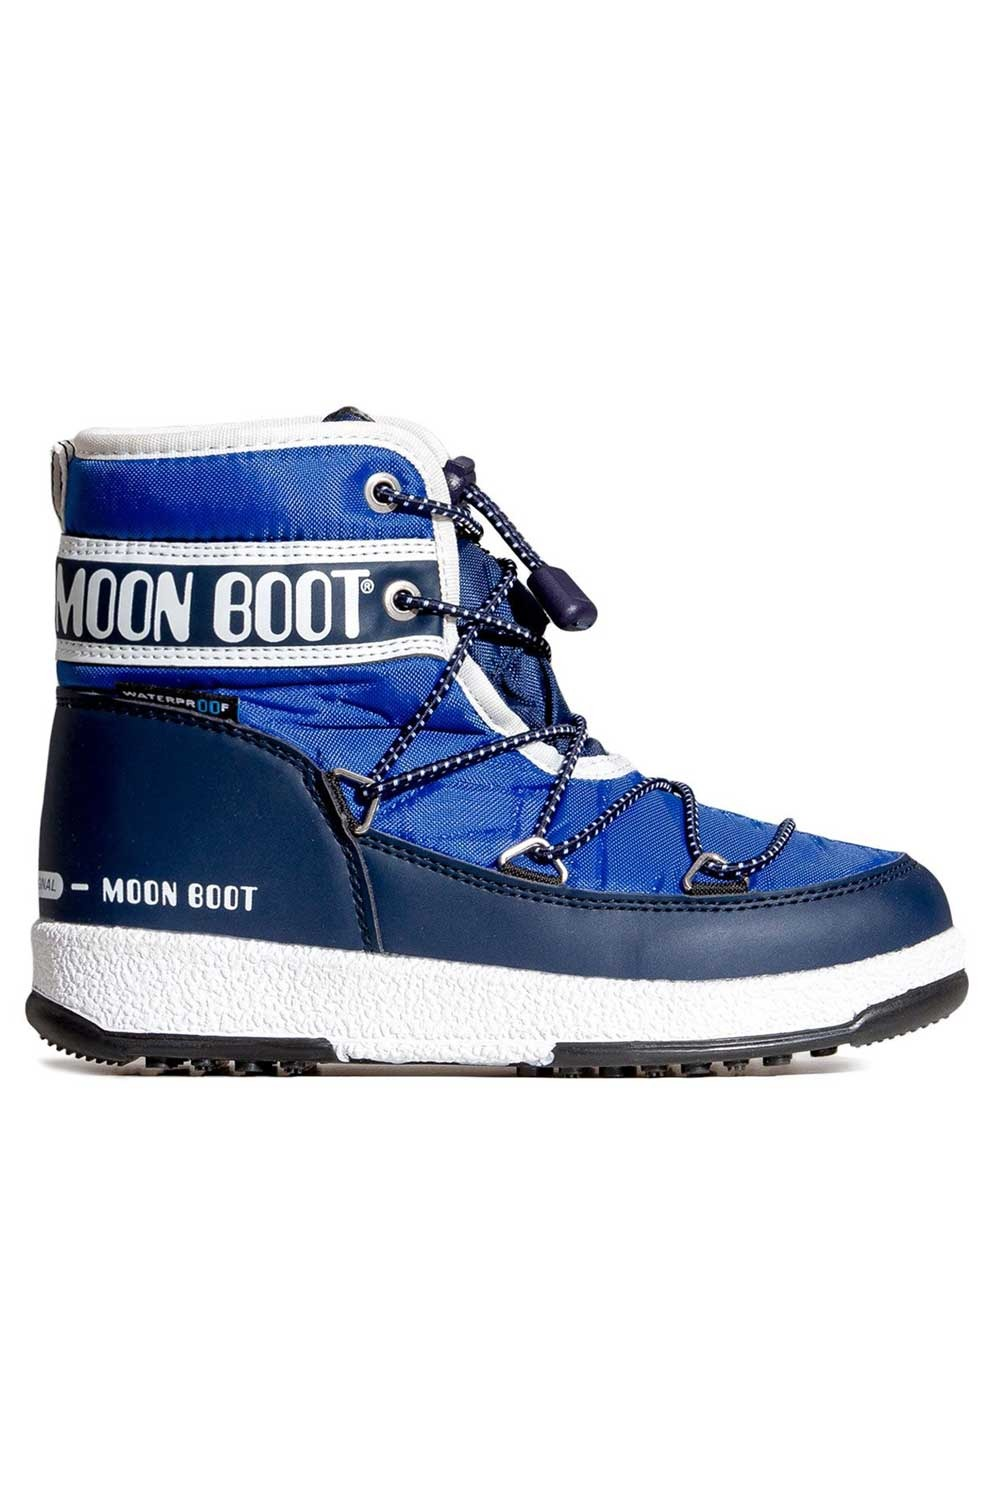 문부츠 키즈 방한부츠 JR 보이 미드 WP_MOONBOOT YOUTH MOON BOOT JR BOY MID WP_ROYAL/NAVY_VMQ857RY_AVMQ857RY